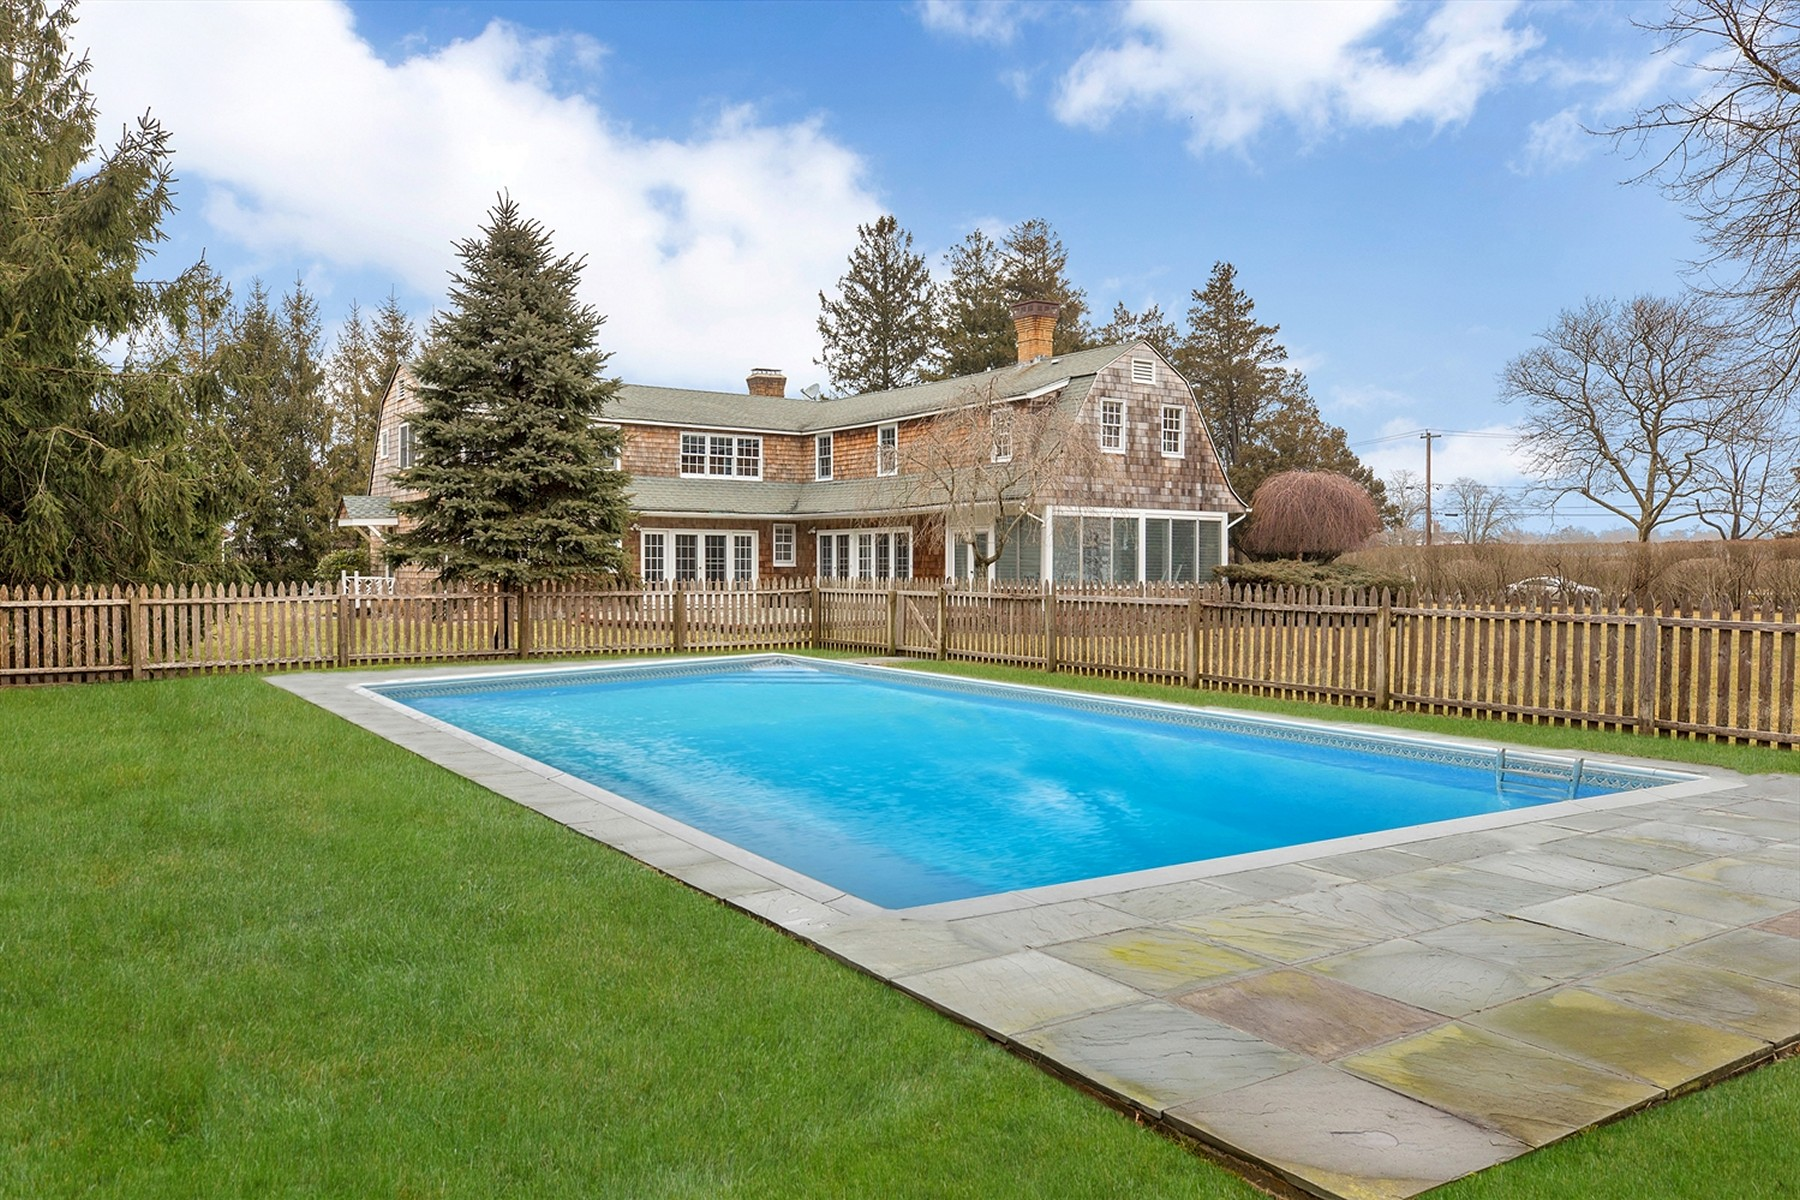 Single Family Home for Active at Westhampton Bch 33 Seafield Ln Westhampton Beach, New York 11978 United States